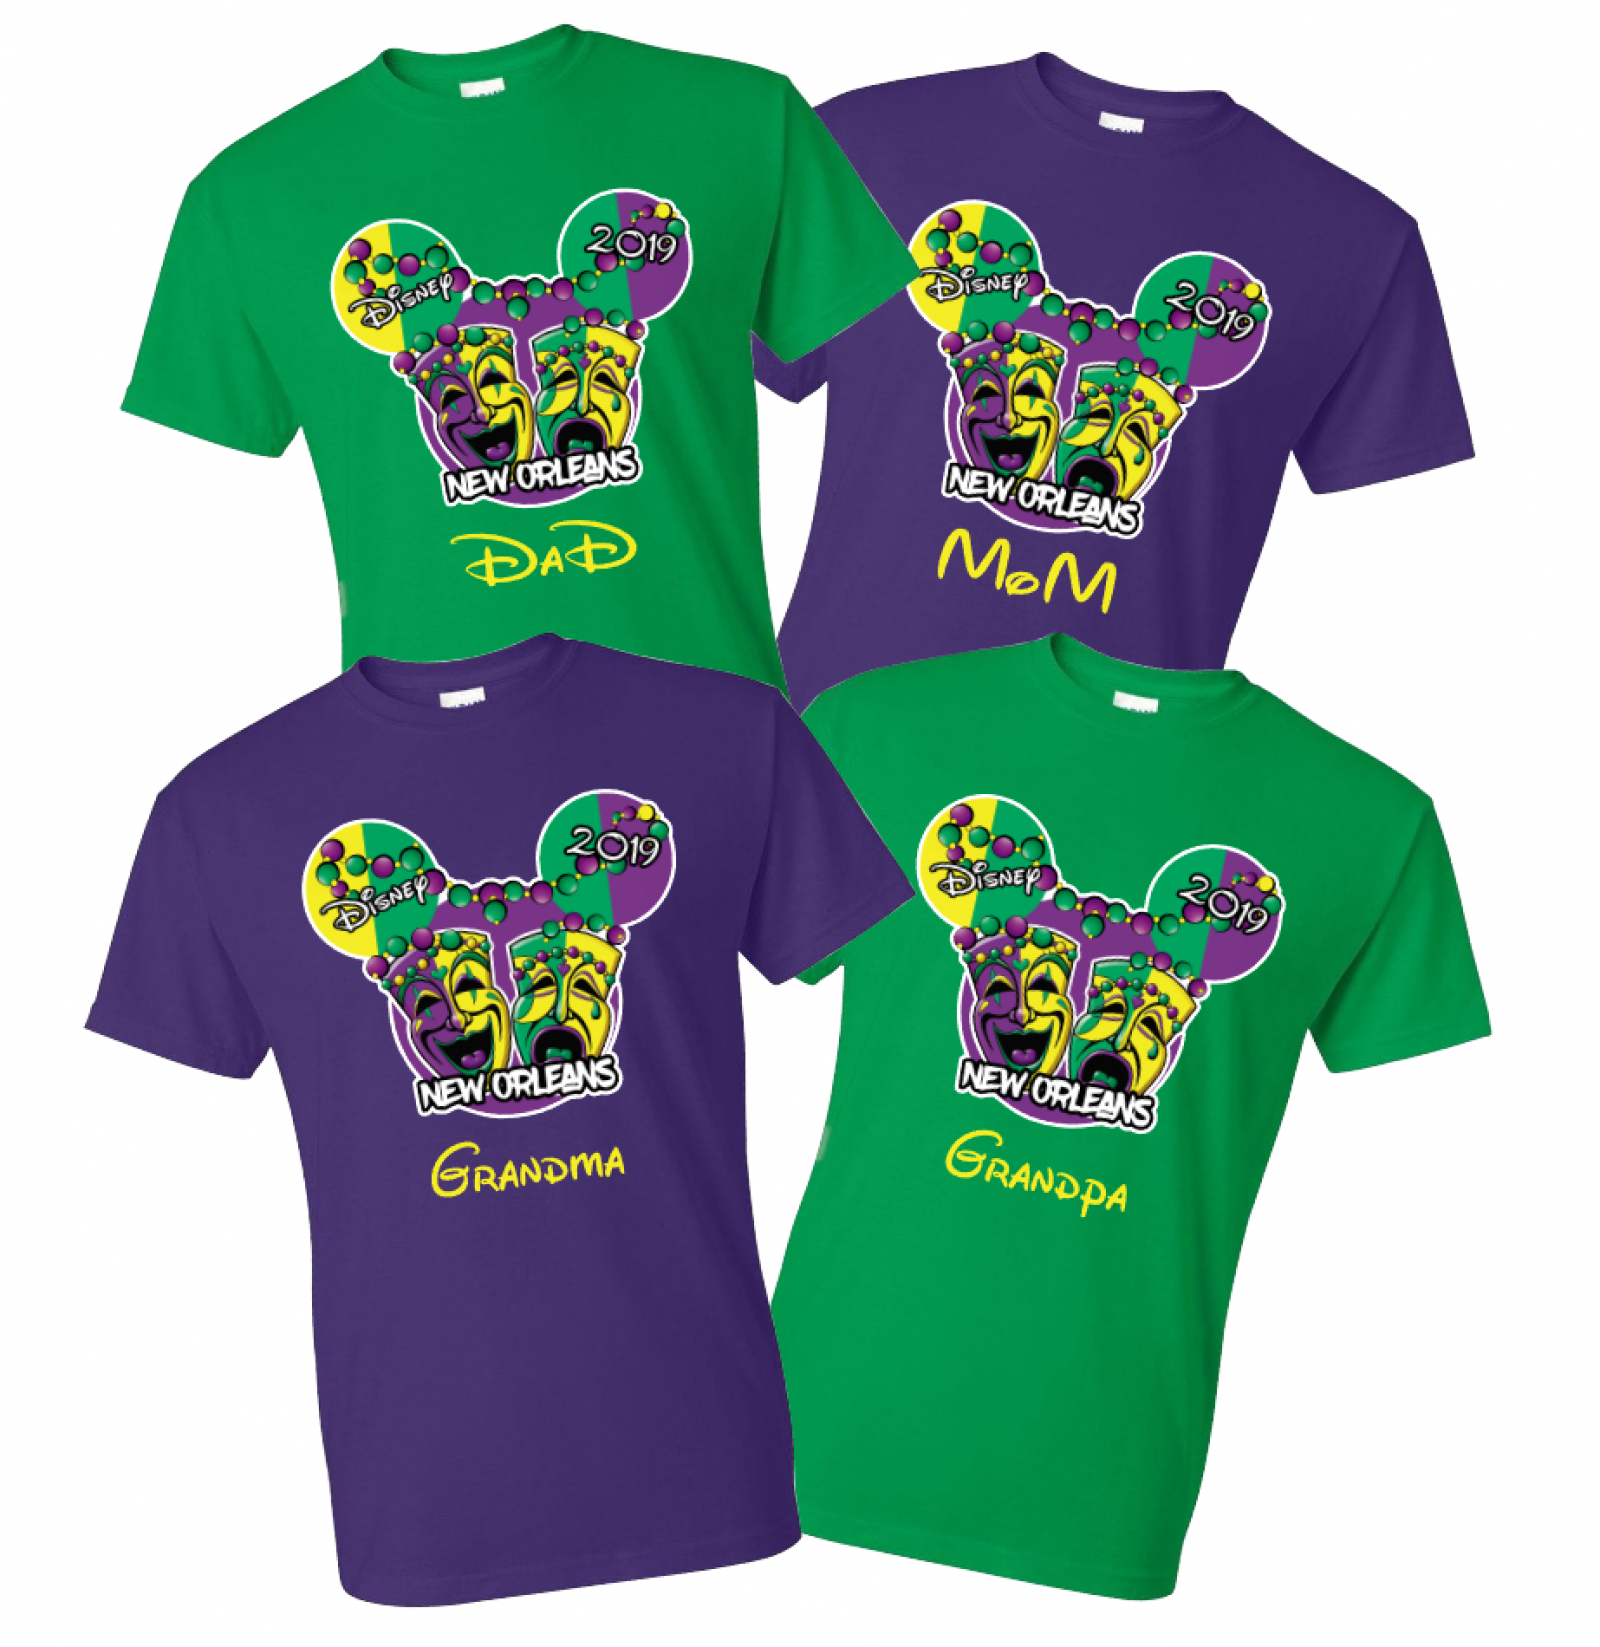 578455e053db32 Disney Mardi Gras Family Vacation T Shirts | The Official Site of ...